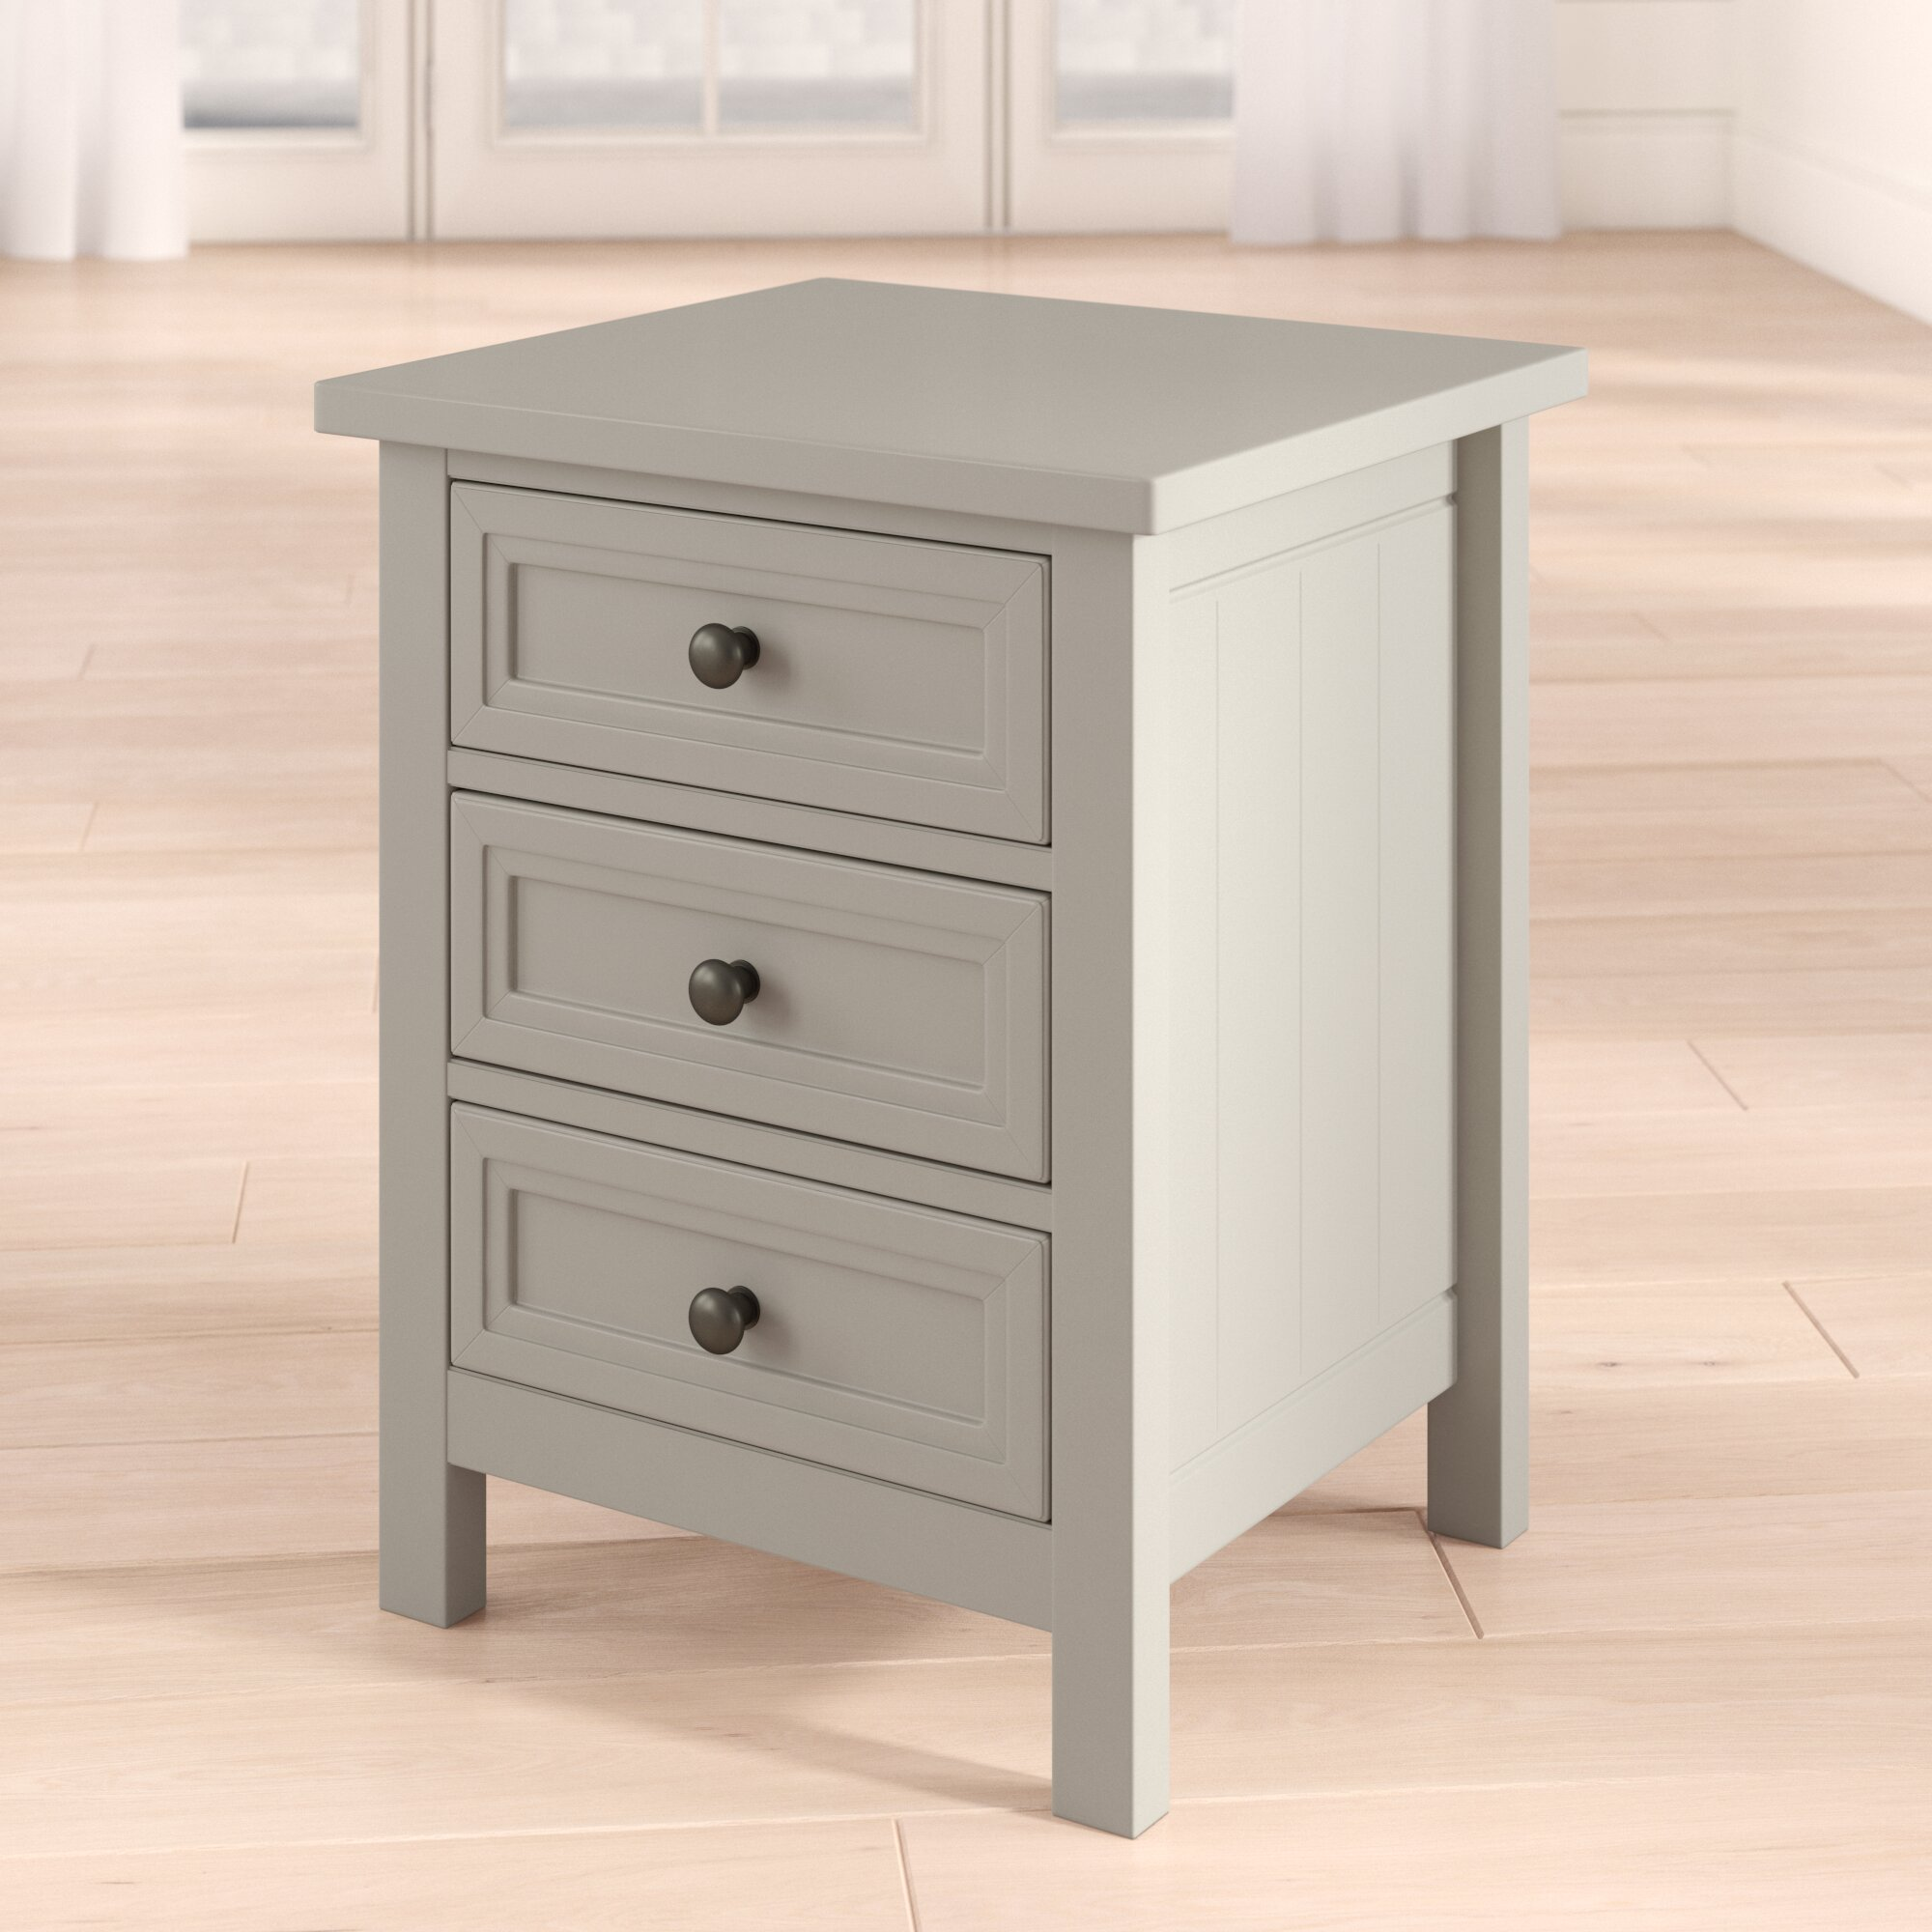 new arrivals 49503 cb4df Trident 3 Drawer Bedside Table